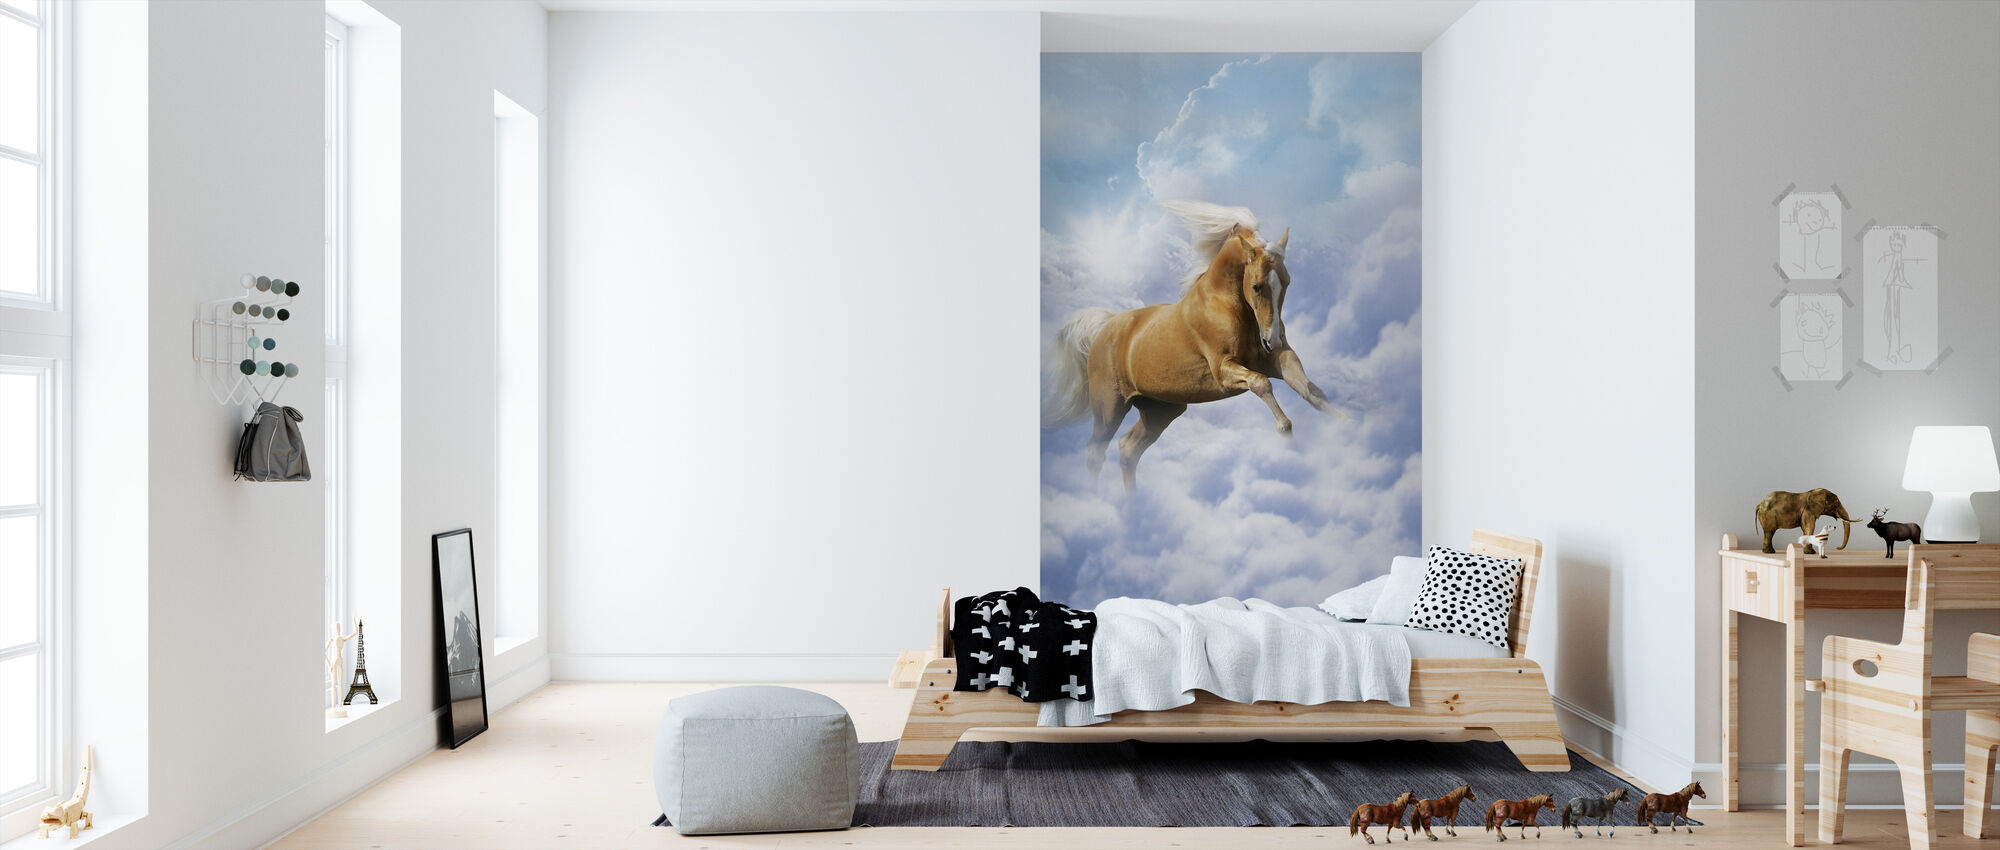 Cloud Horse - Wallpaper - Kids Room